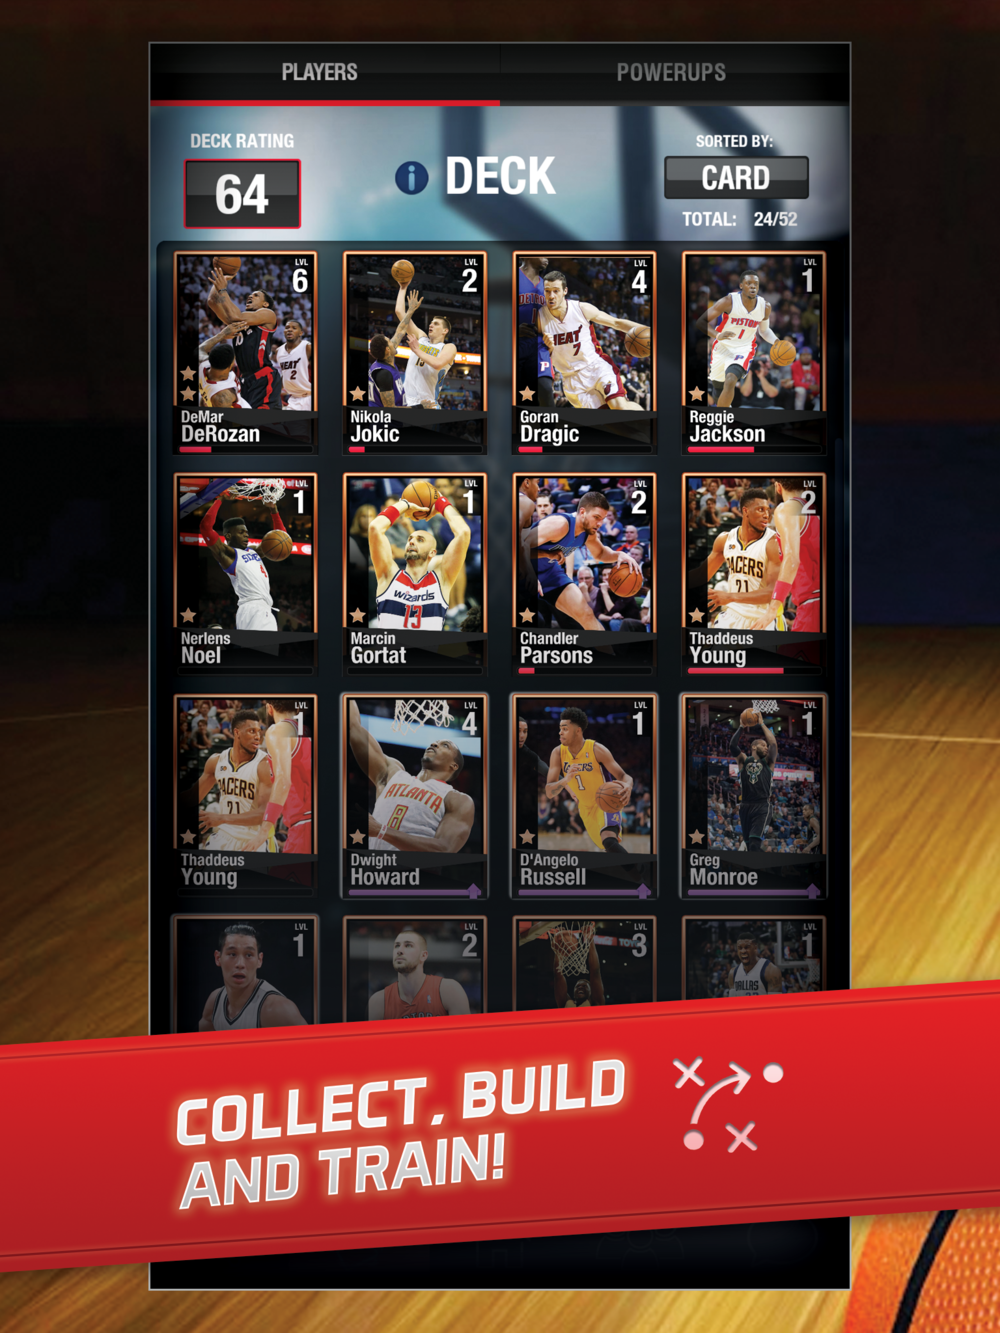 COLLECT, BUILD AND TRAIN! All of your favourite players are here to collect, level up, and train. You never know who will have a hot night, so pick well!